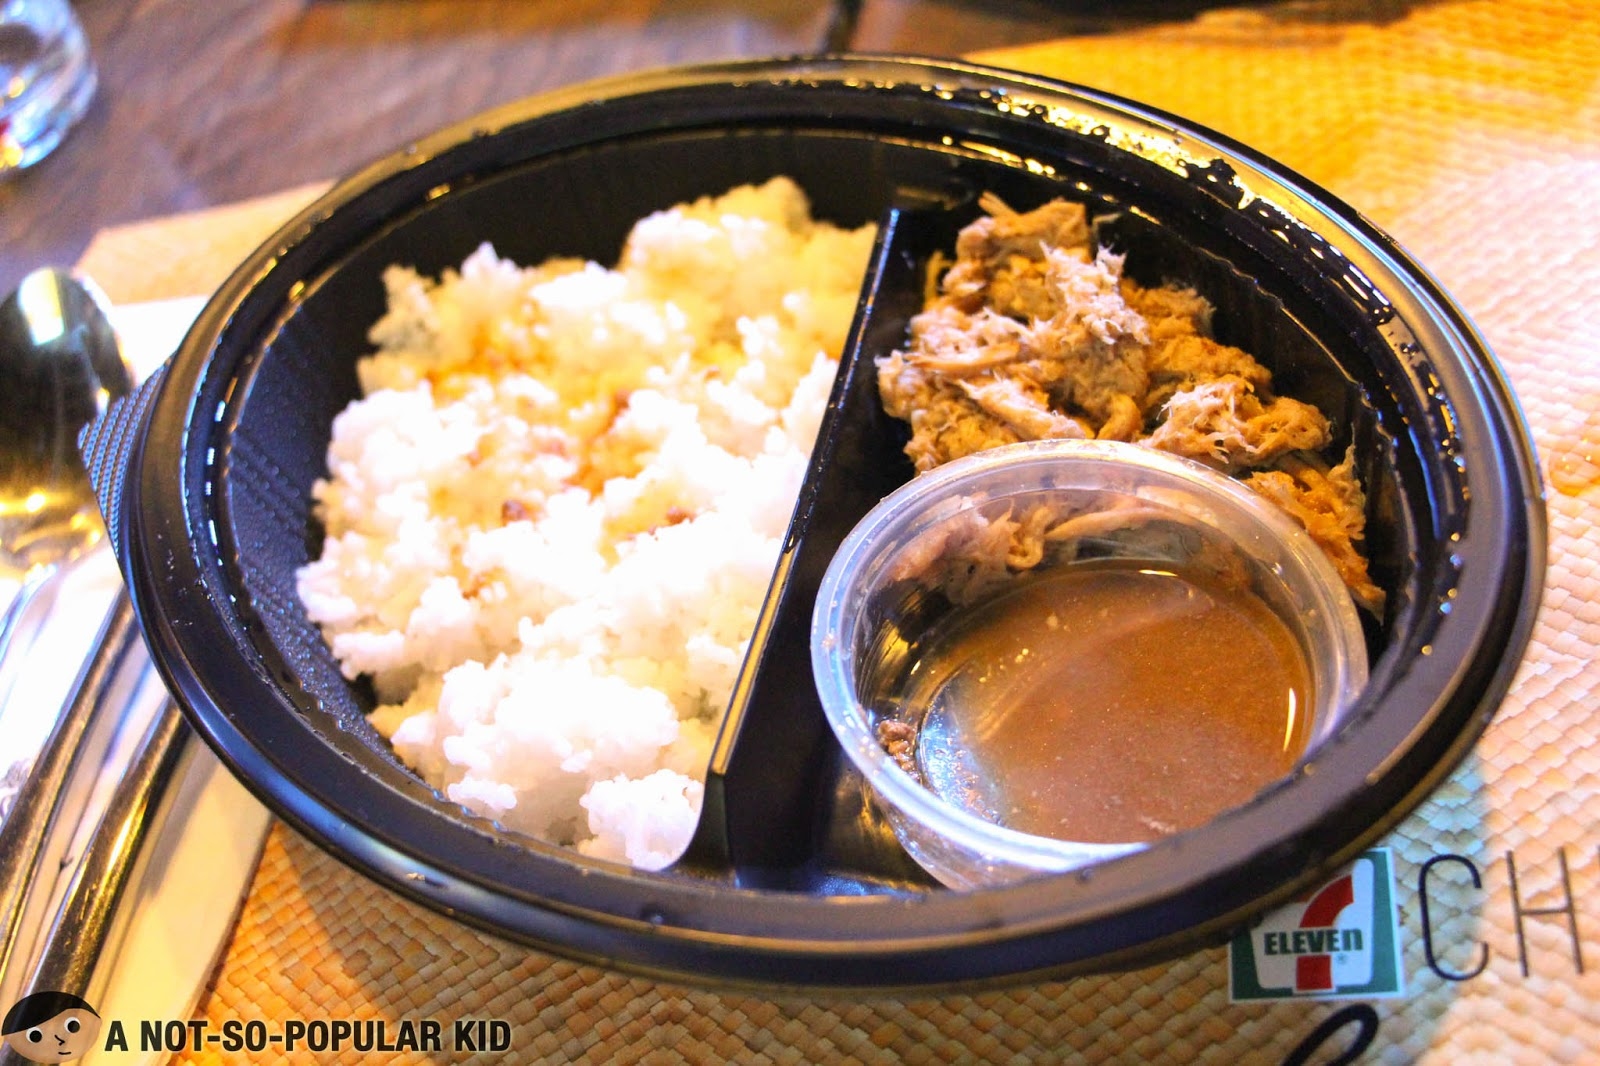 7 Eleven's Pulled Pork with Adobo Dip